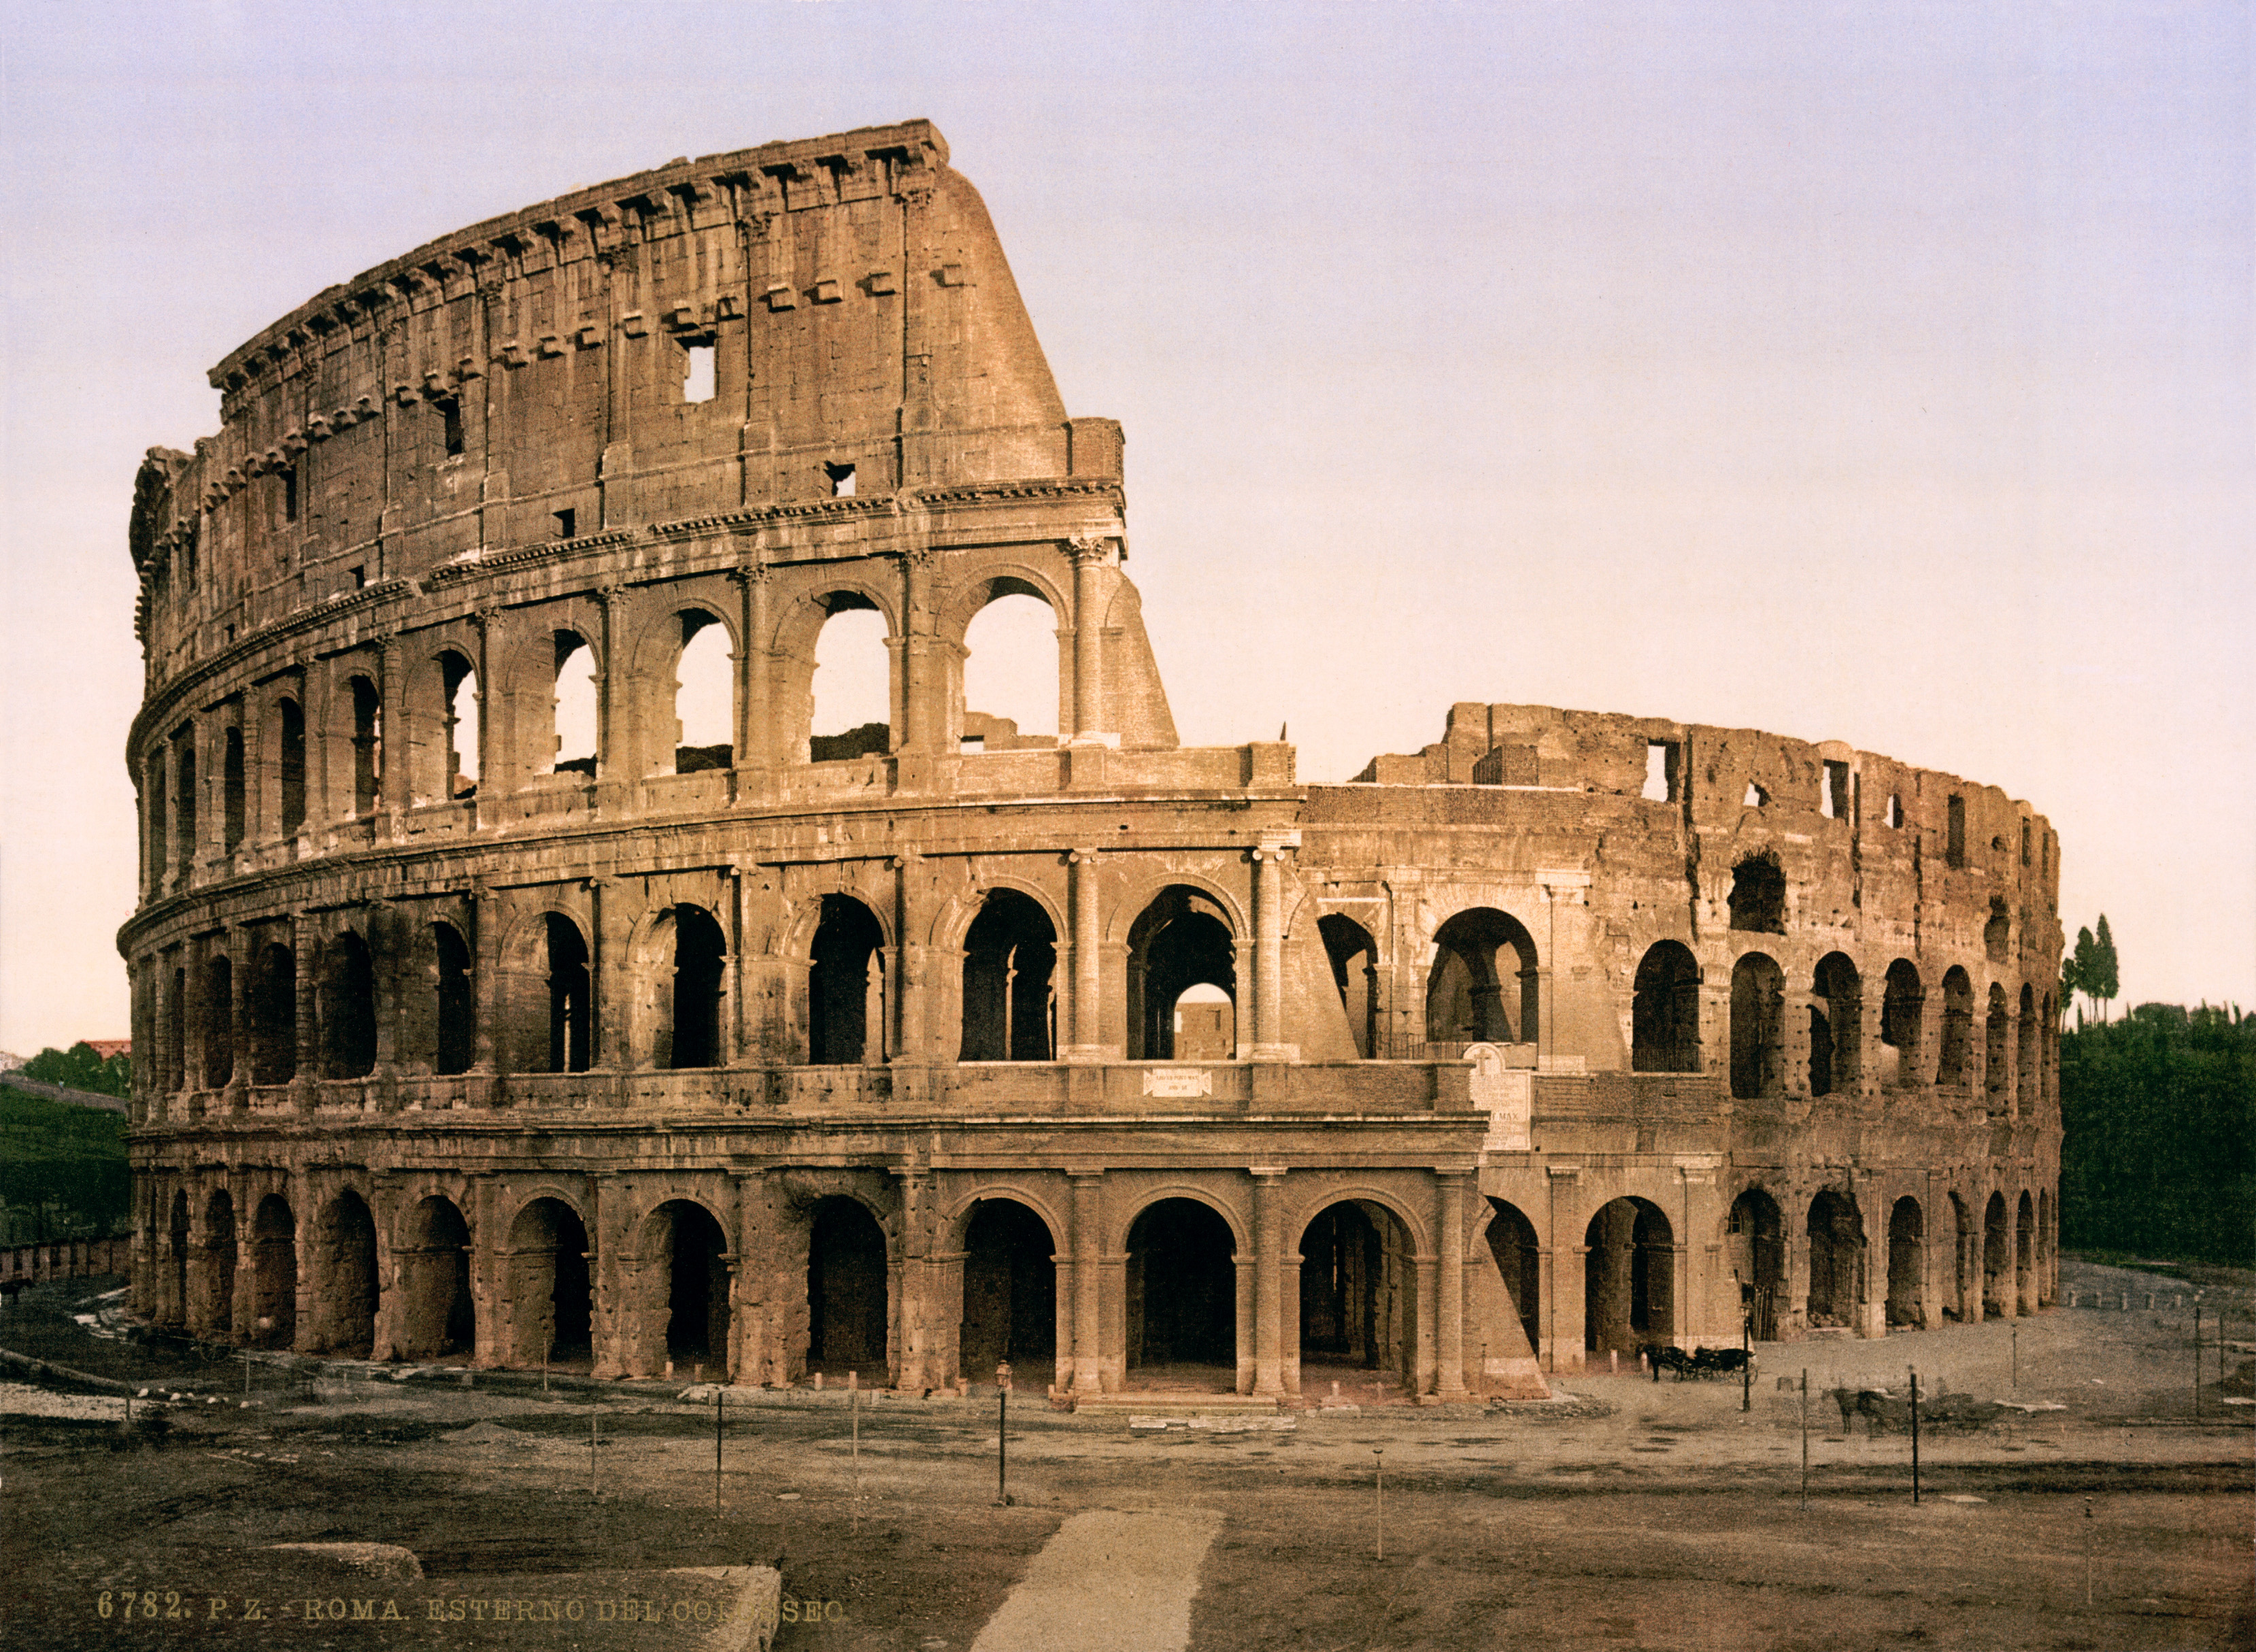 Flickr Trialsanderrors The Colosseum Rome Italy Ca 1896